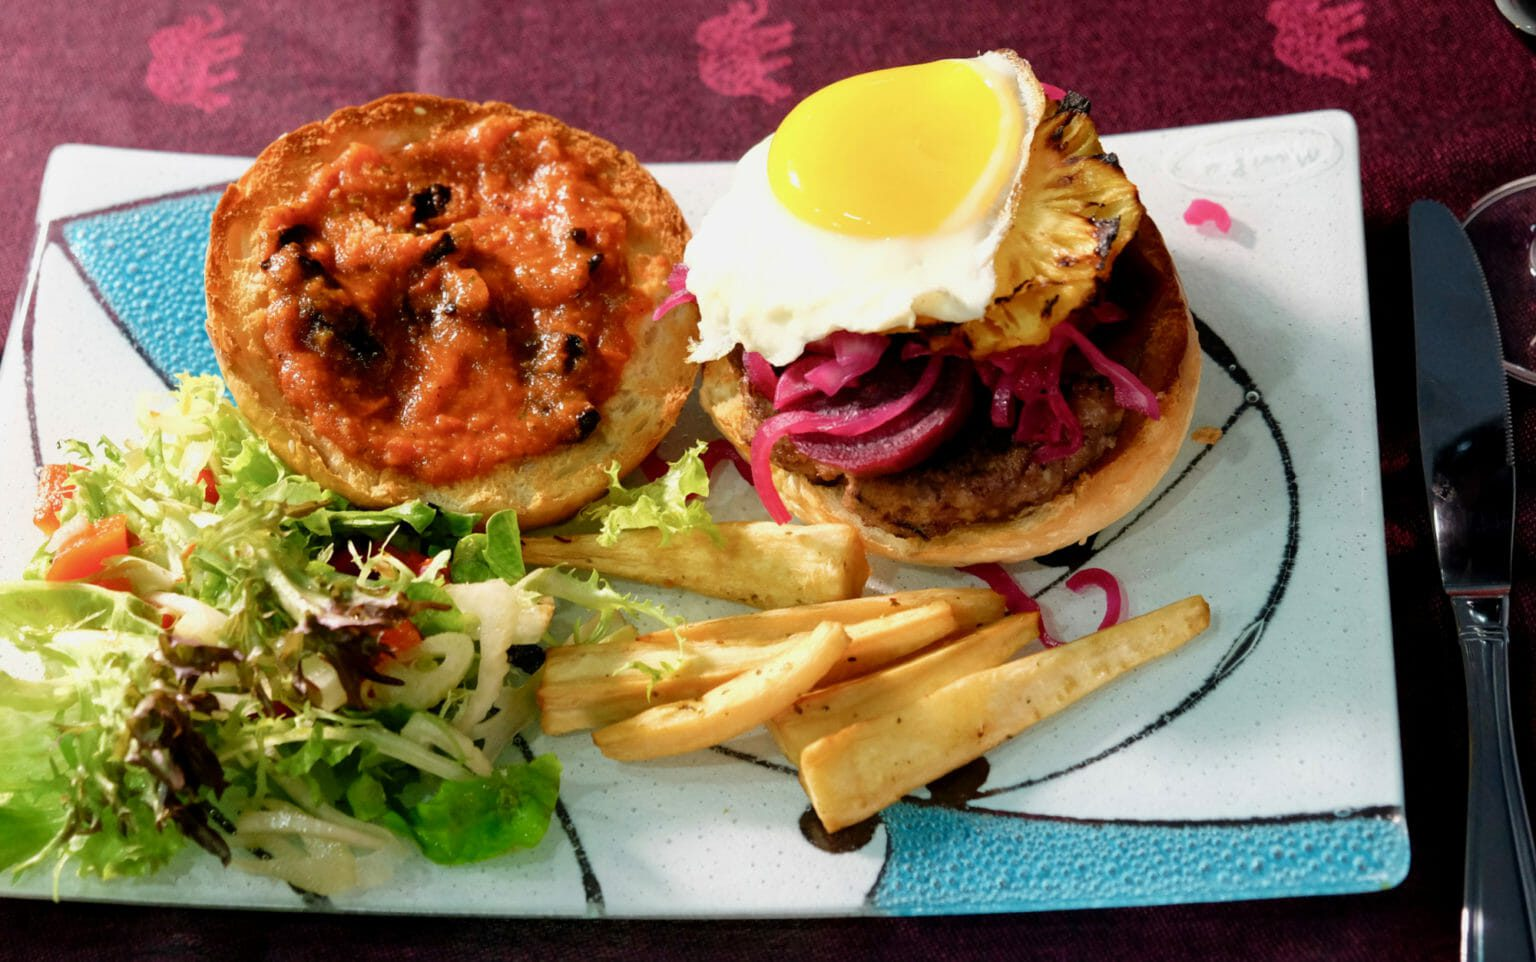 burger-with-pickled-beets-smoky-grilled-pineapple-fried-egg-and-tomato-and-black-garlic-sauce